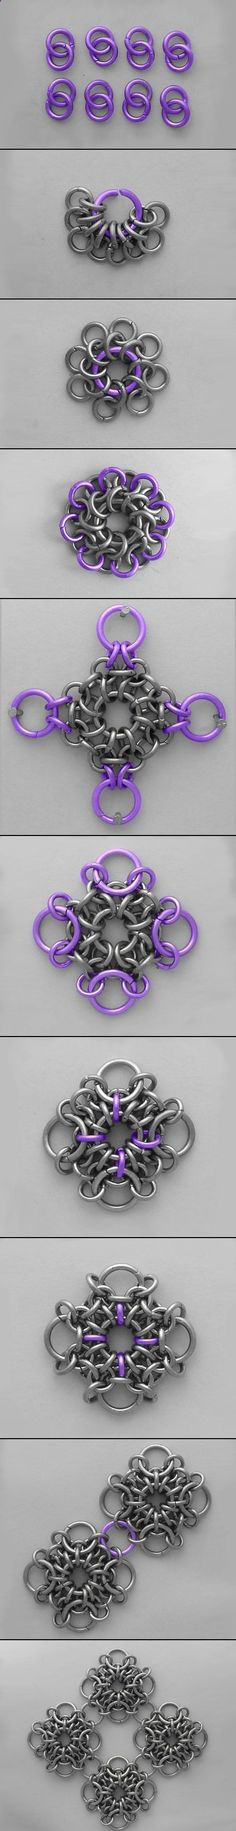 Chainmaille Tutorial - would make a nice belt or veil cover? Jump Ring Jewelry, Wire Jewelry, Jewelry Crafts, Jewelry Art, Beaded Jewelry, Jewelery, Handmade Jewelry, Jewelry Design, Wire Earrings